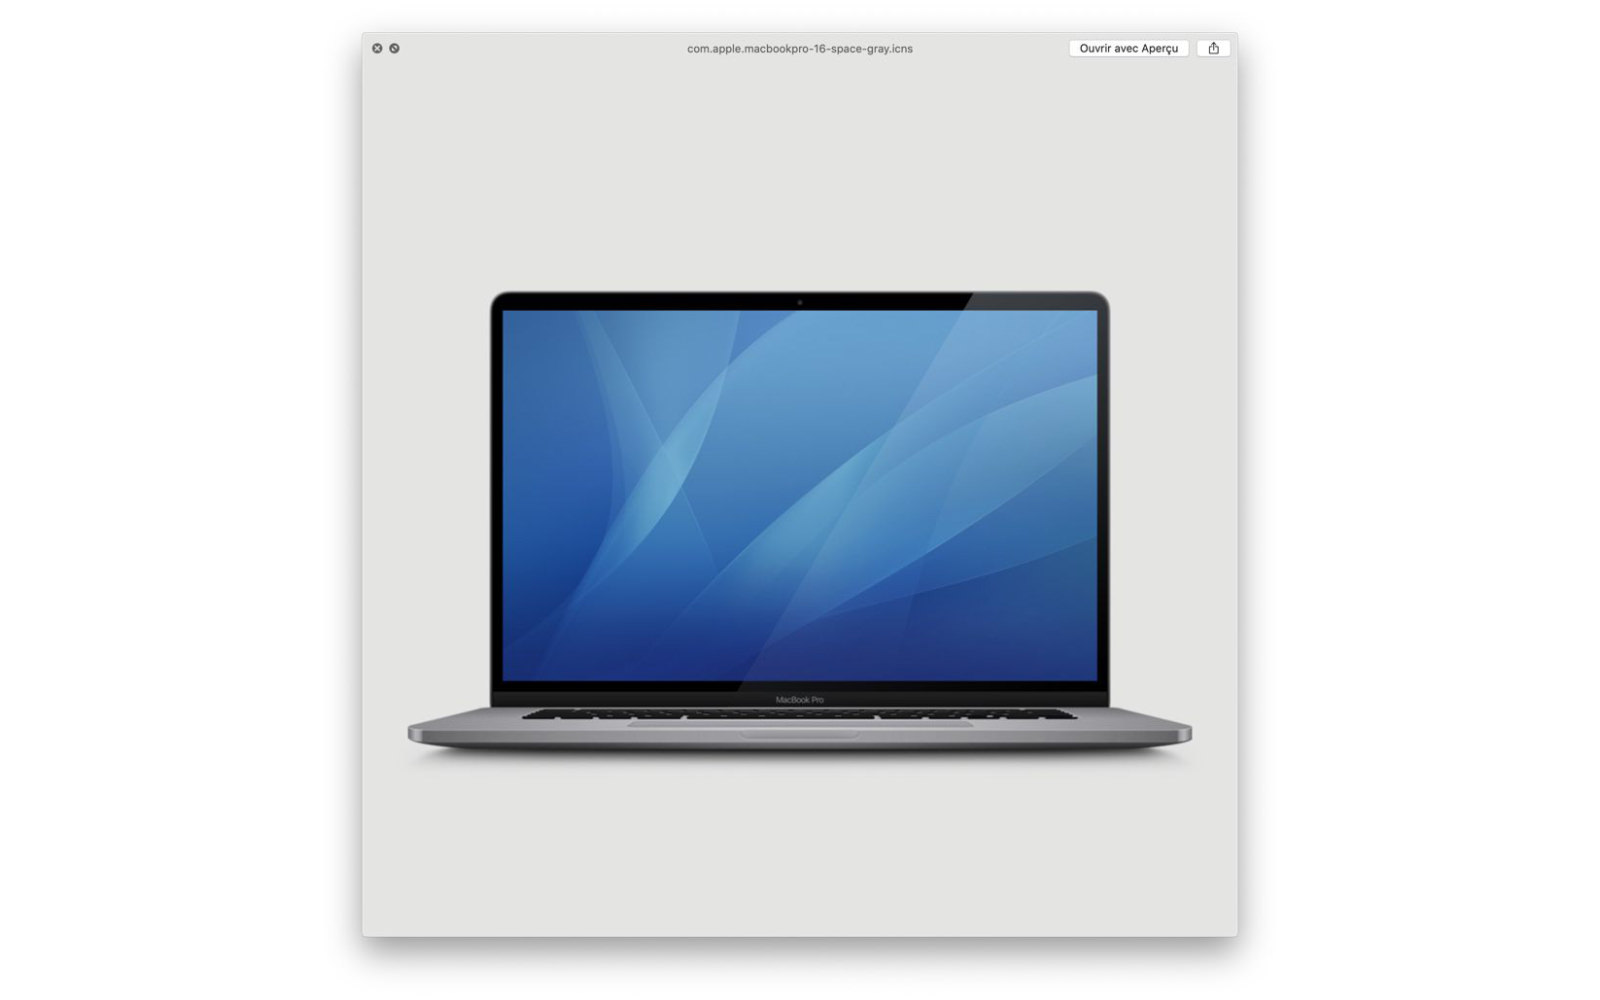 Is this the new macbookpro 16inch model